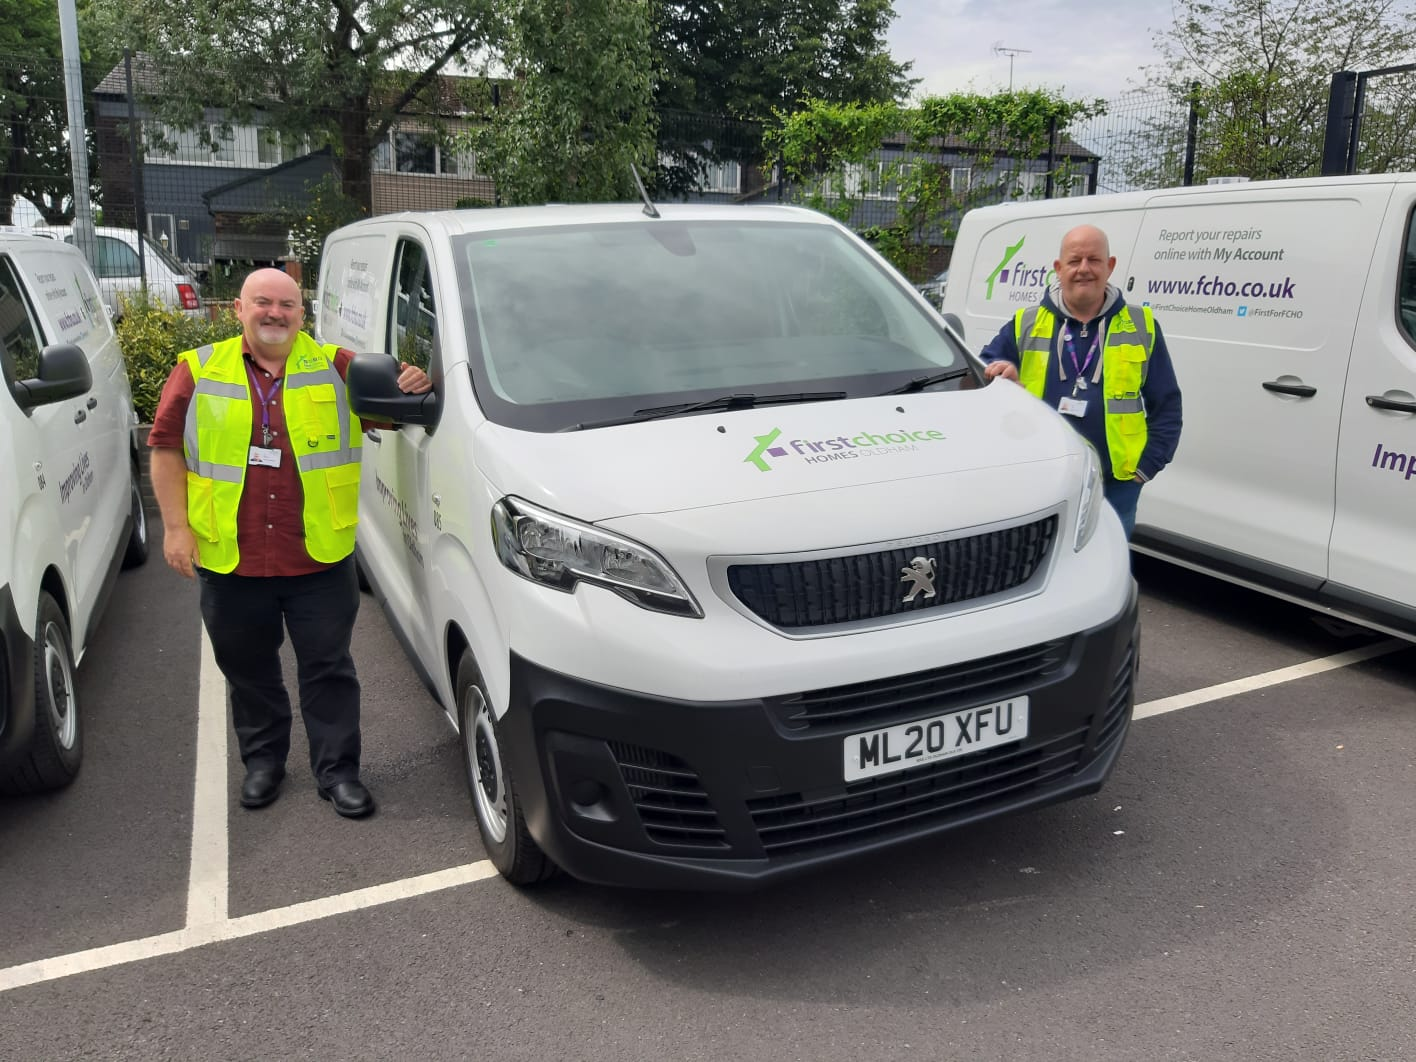 First Choice Homes Oldham's new 'cleaner' fleet supports local economy